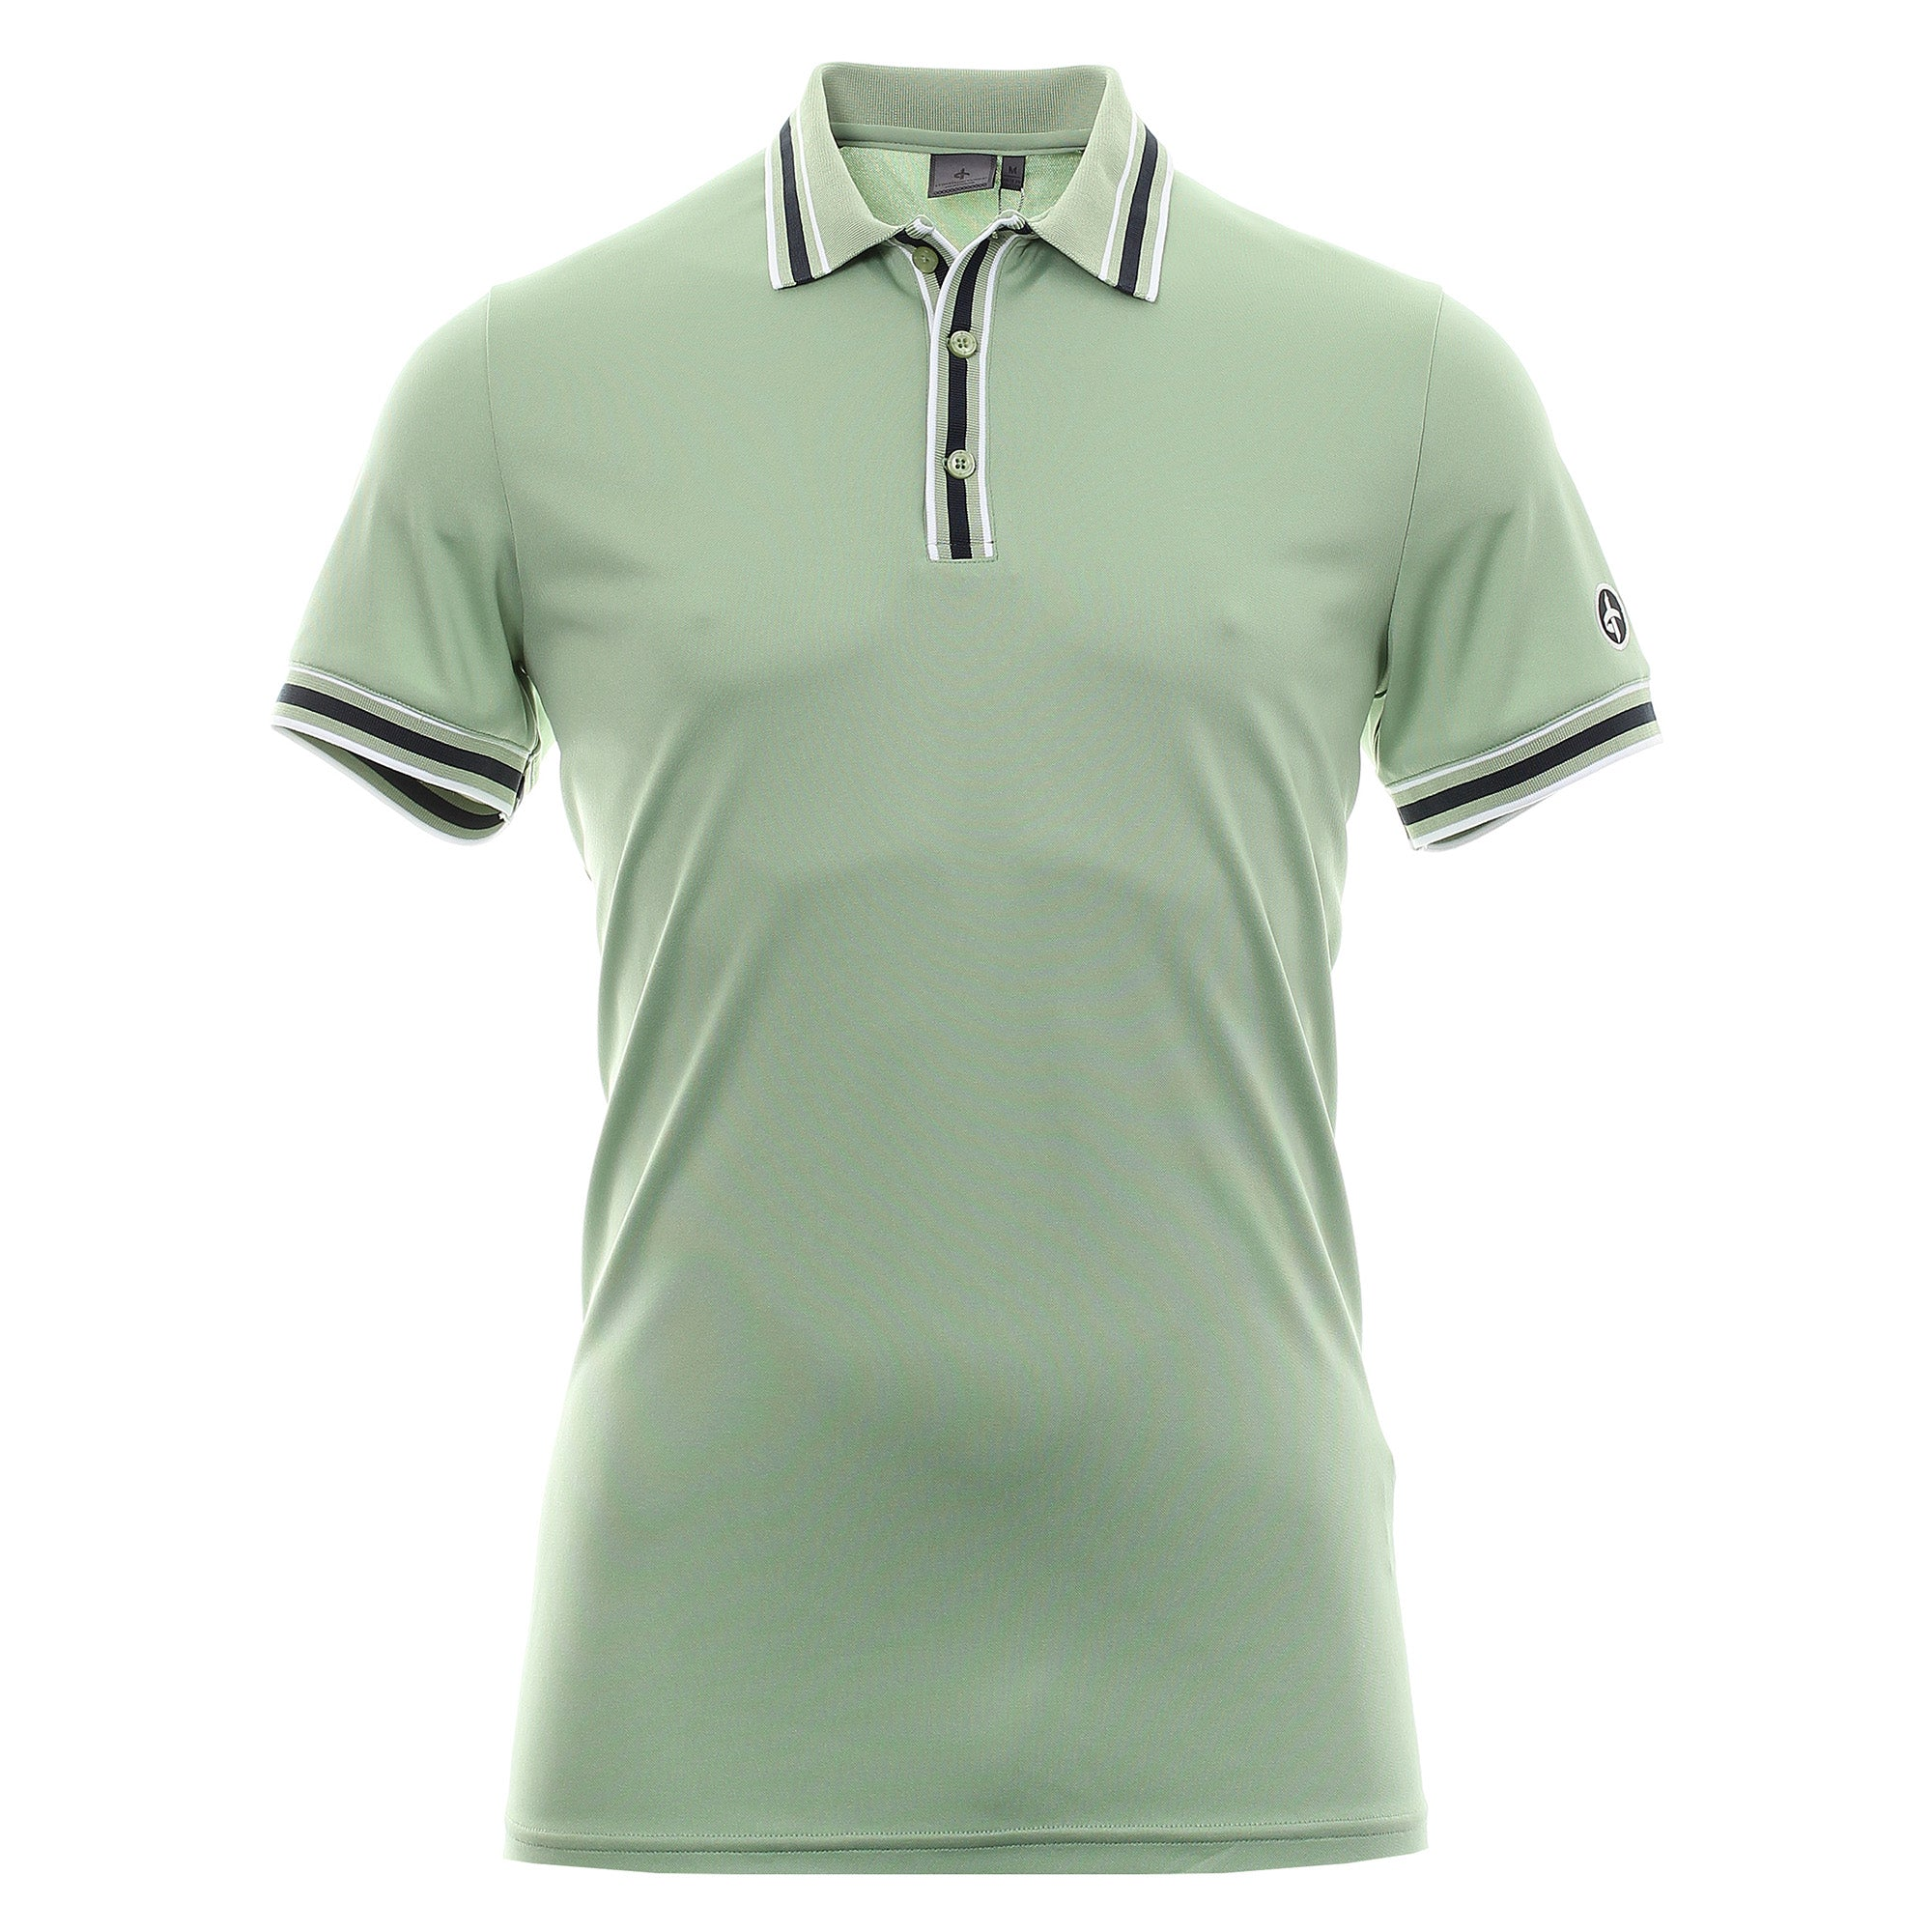 Cross Nostalgia Golf Shirt